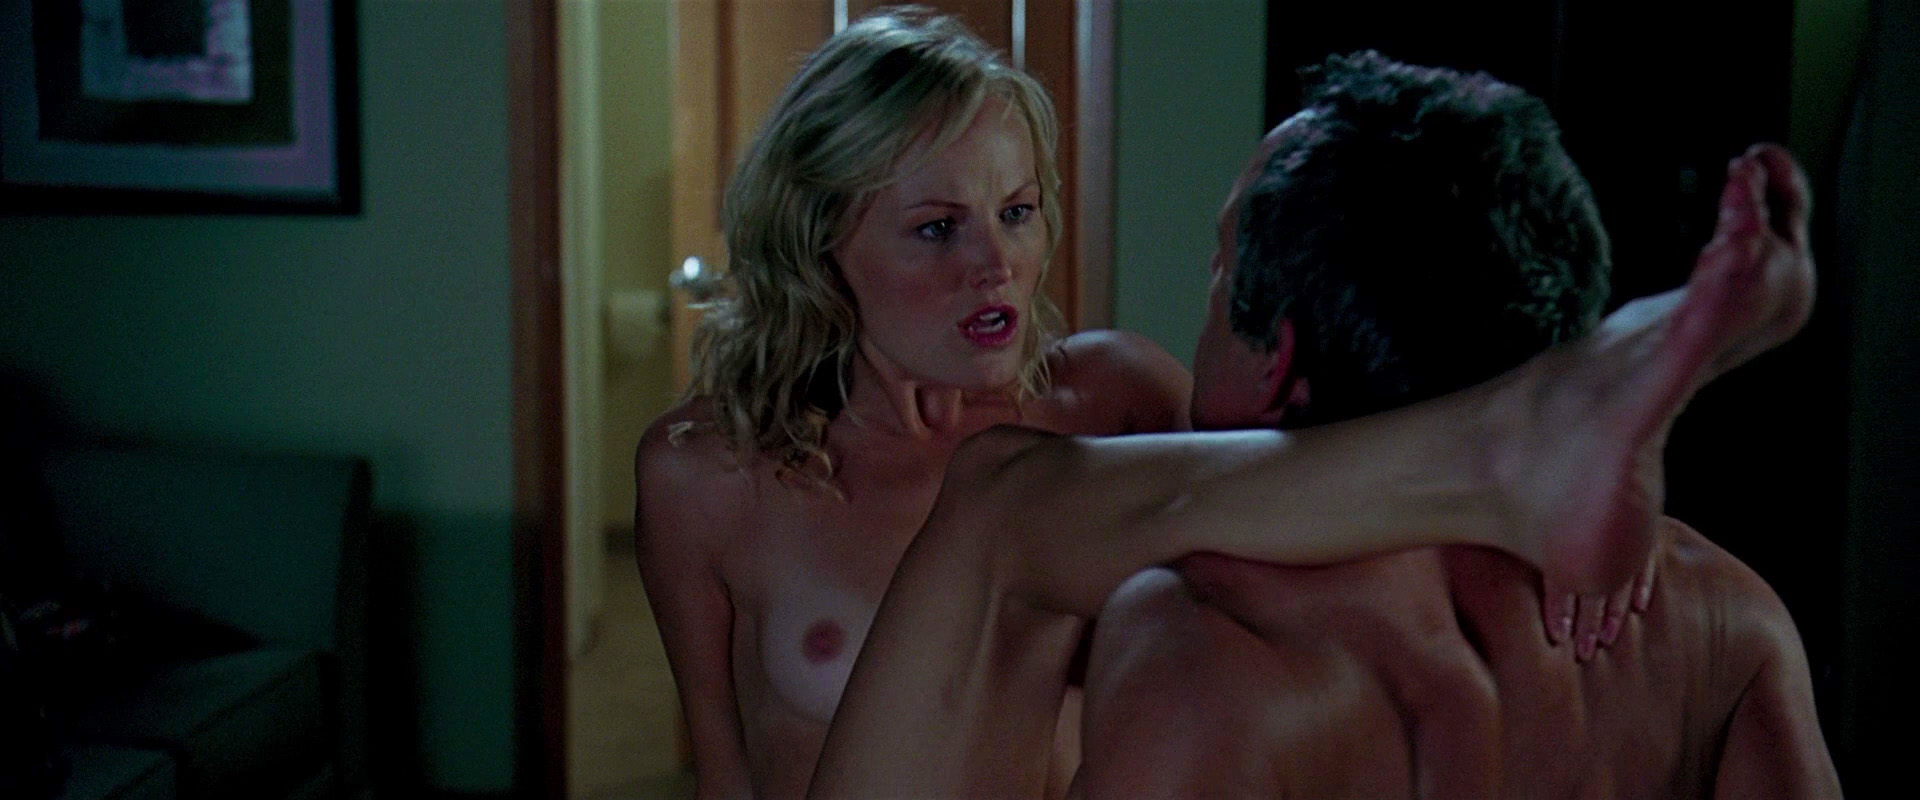 Malin Akerman – The Heartbreak Kid (2007) HD 1080p